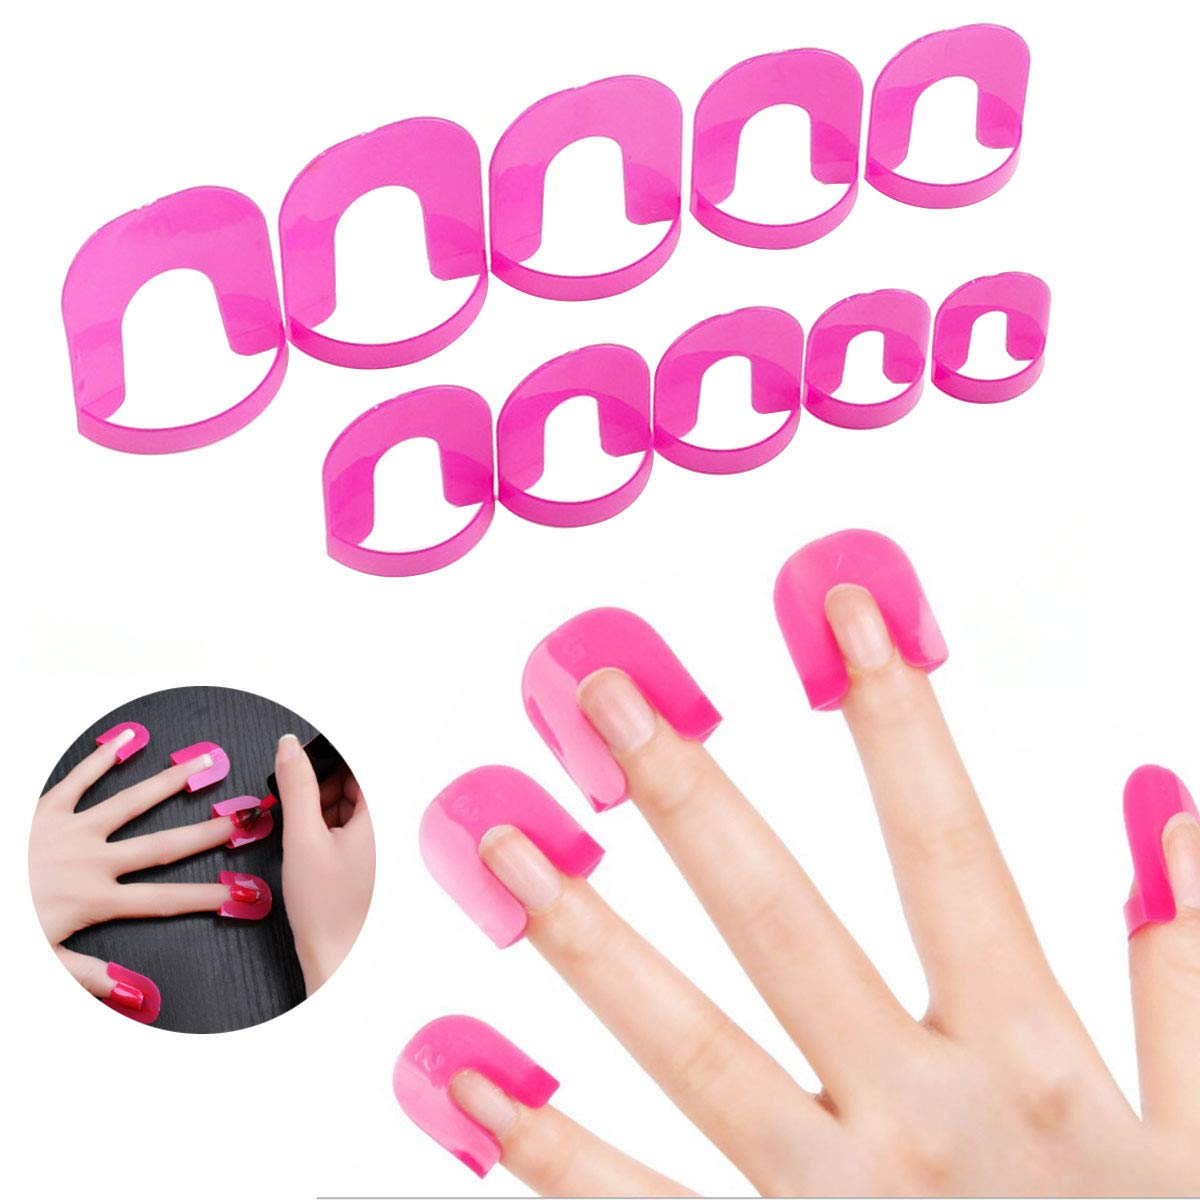 Nail Polish Protector Stencil, 26pcs/pack UV Nail Art Lacquer Palisade Cuticle Guard Skin Barrier Protector Gel Nail Tips Forms Anti Spill Holder Clip Cap Fodlon